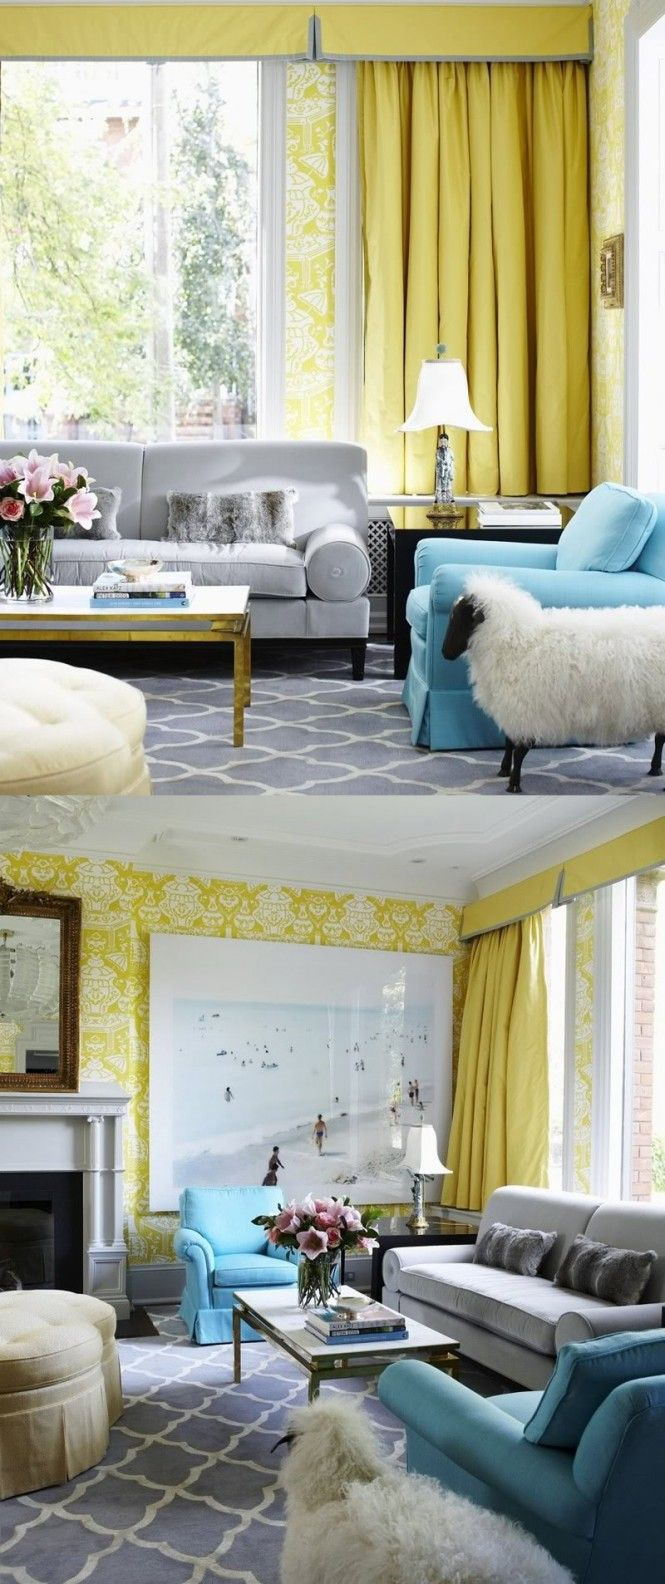 Find this pin and more on colour duck egg and yellow inspiring yellow duck egg blue grey living room marcus design